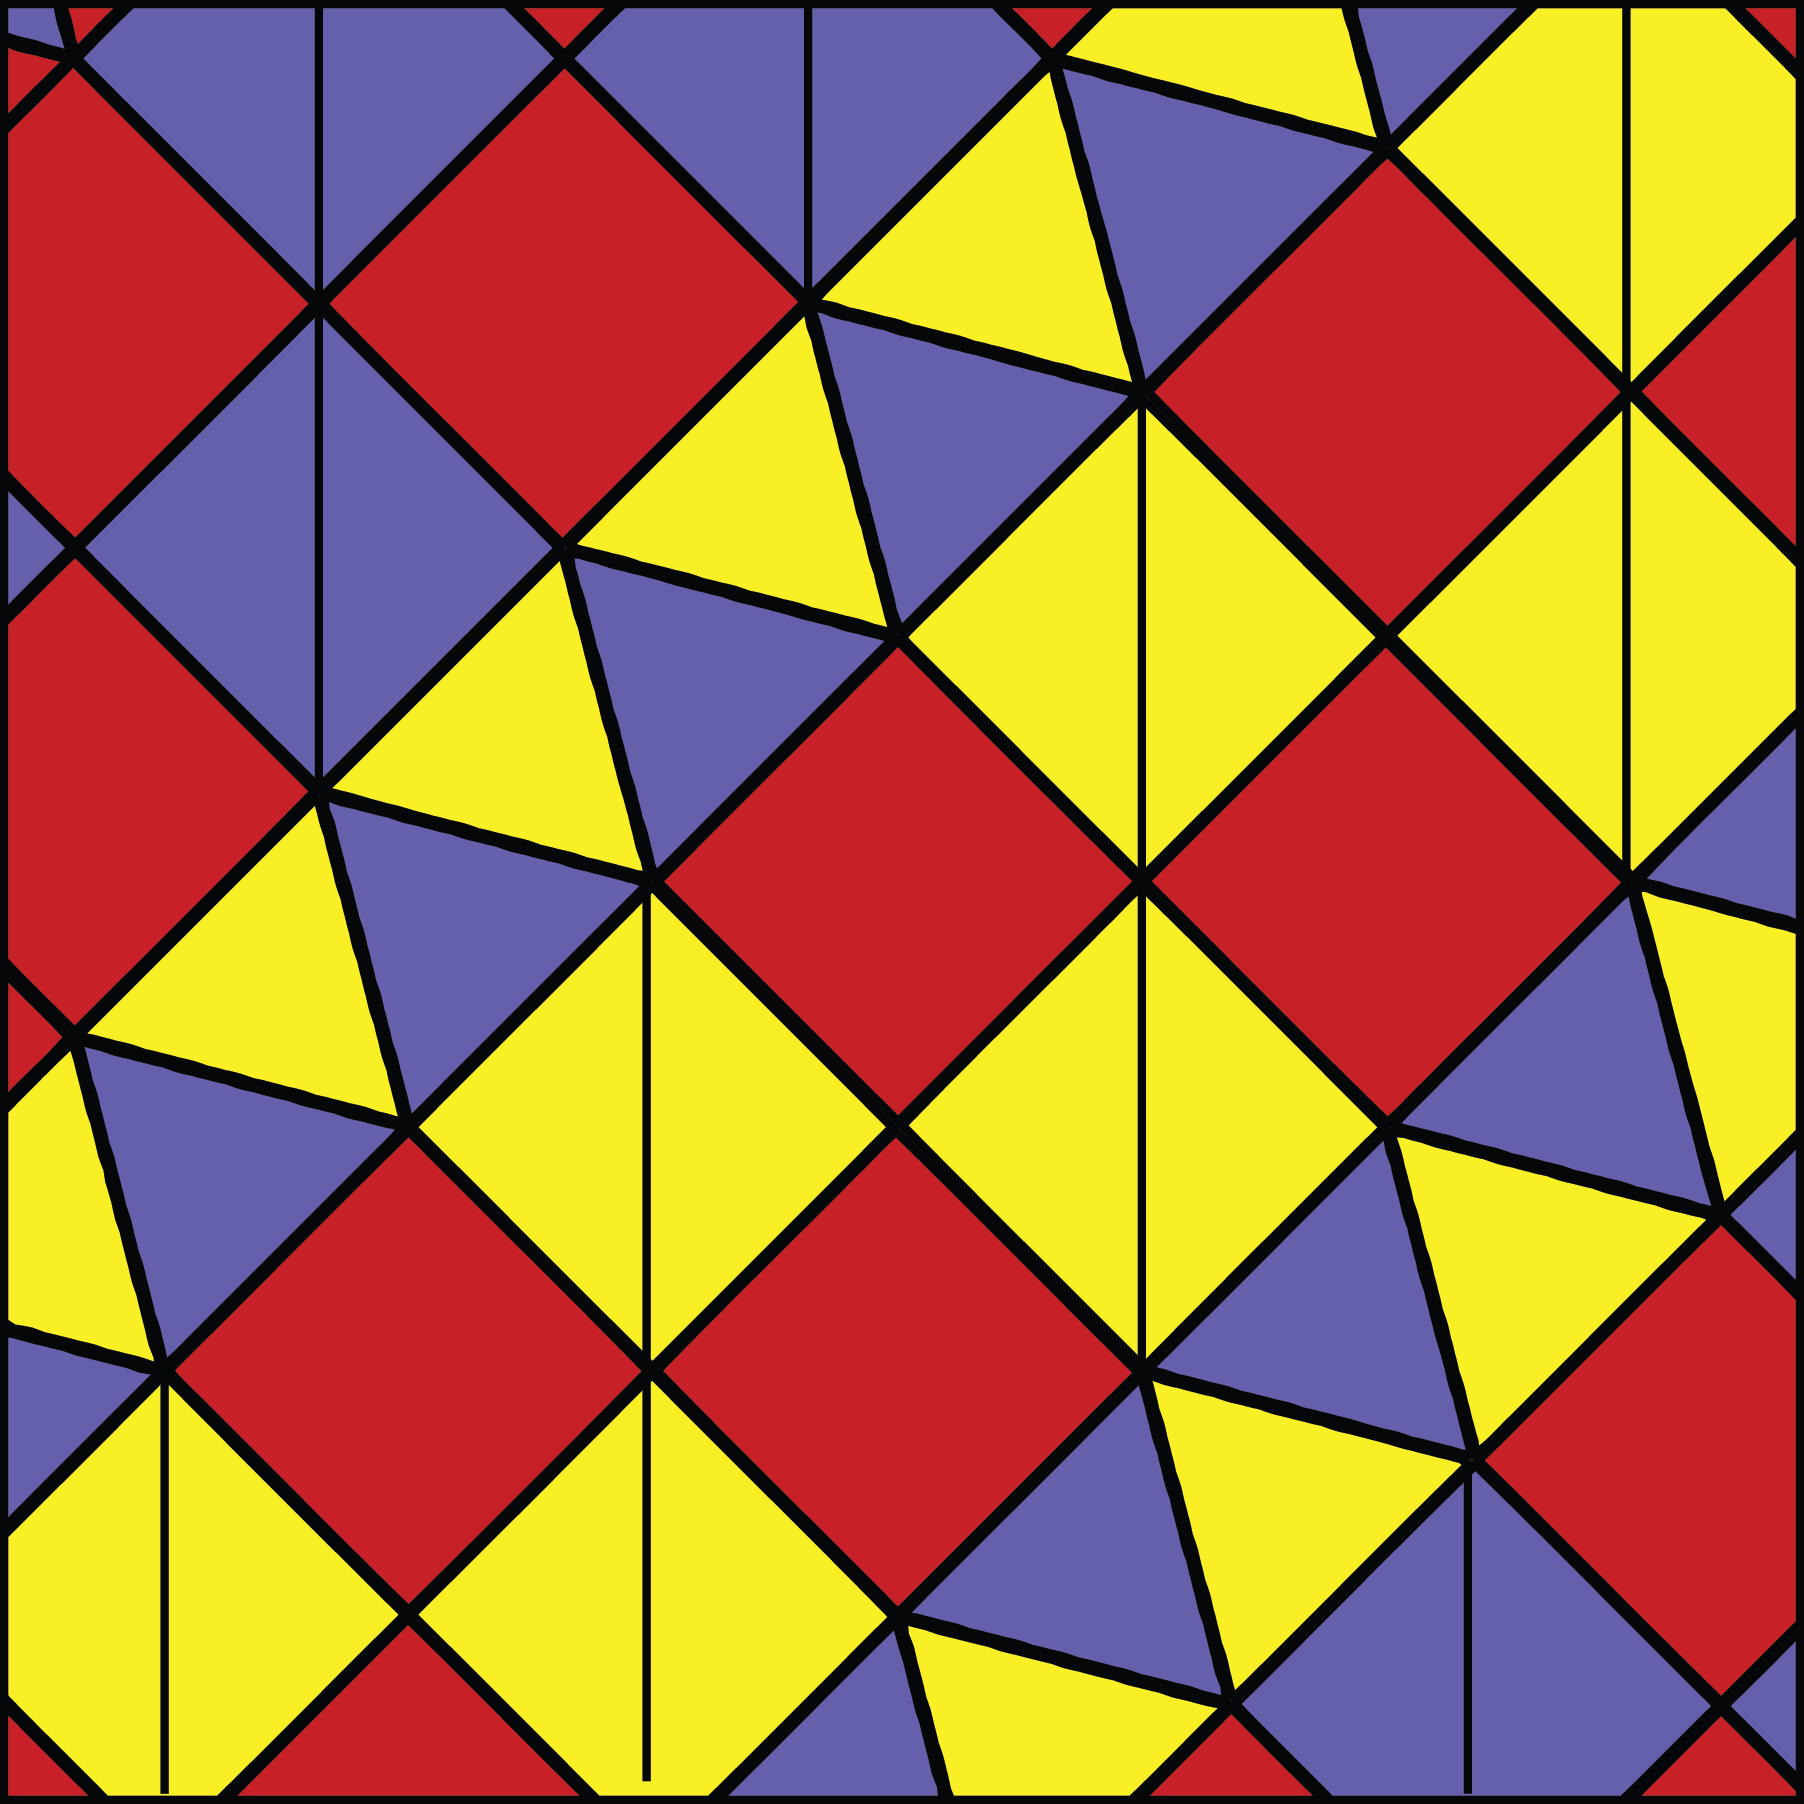 Triadic Color Scheme Examples pattern f34f. red, yellow, blue as a primary triad color scheme